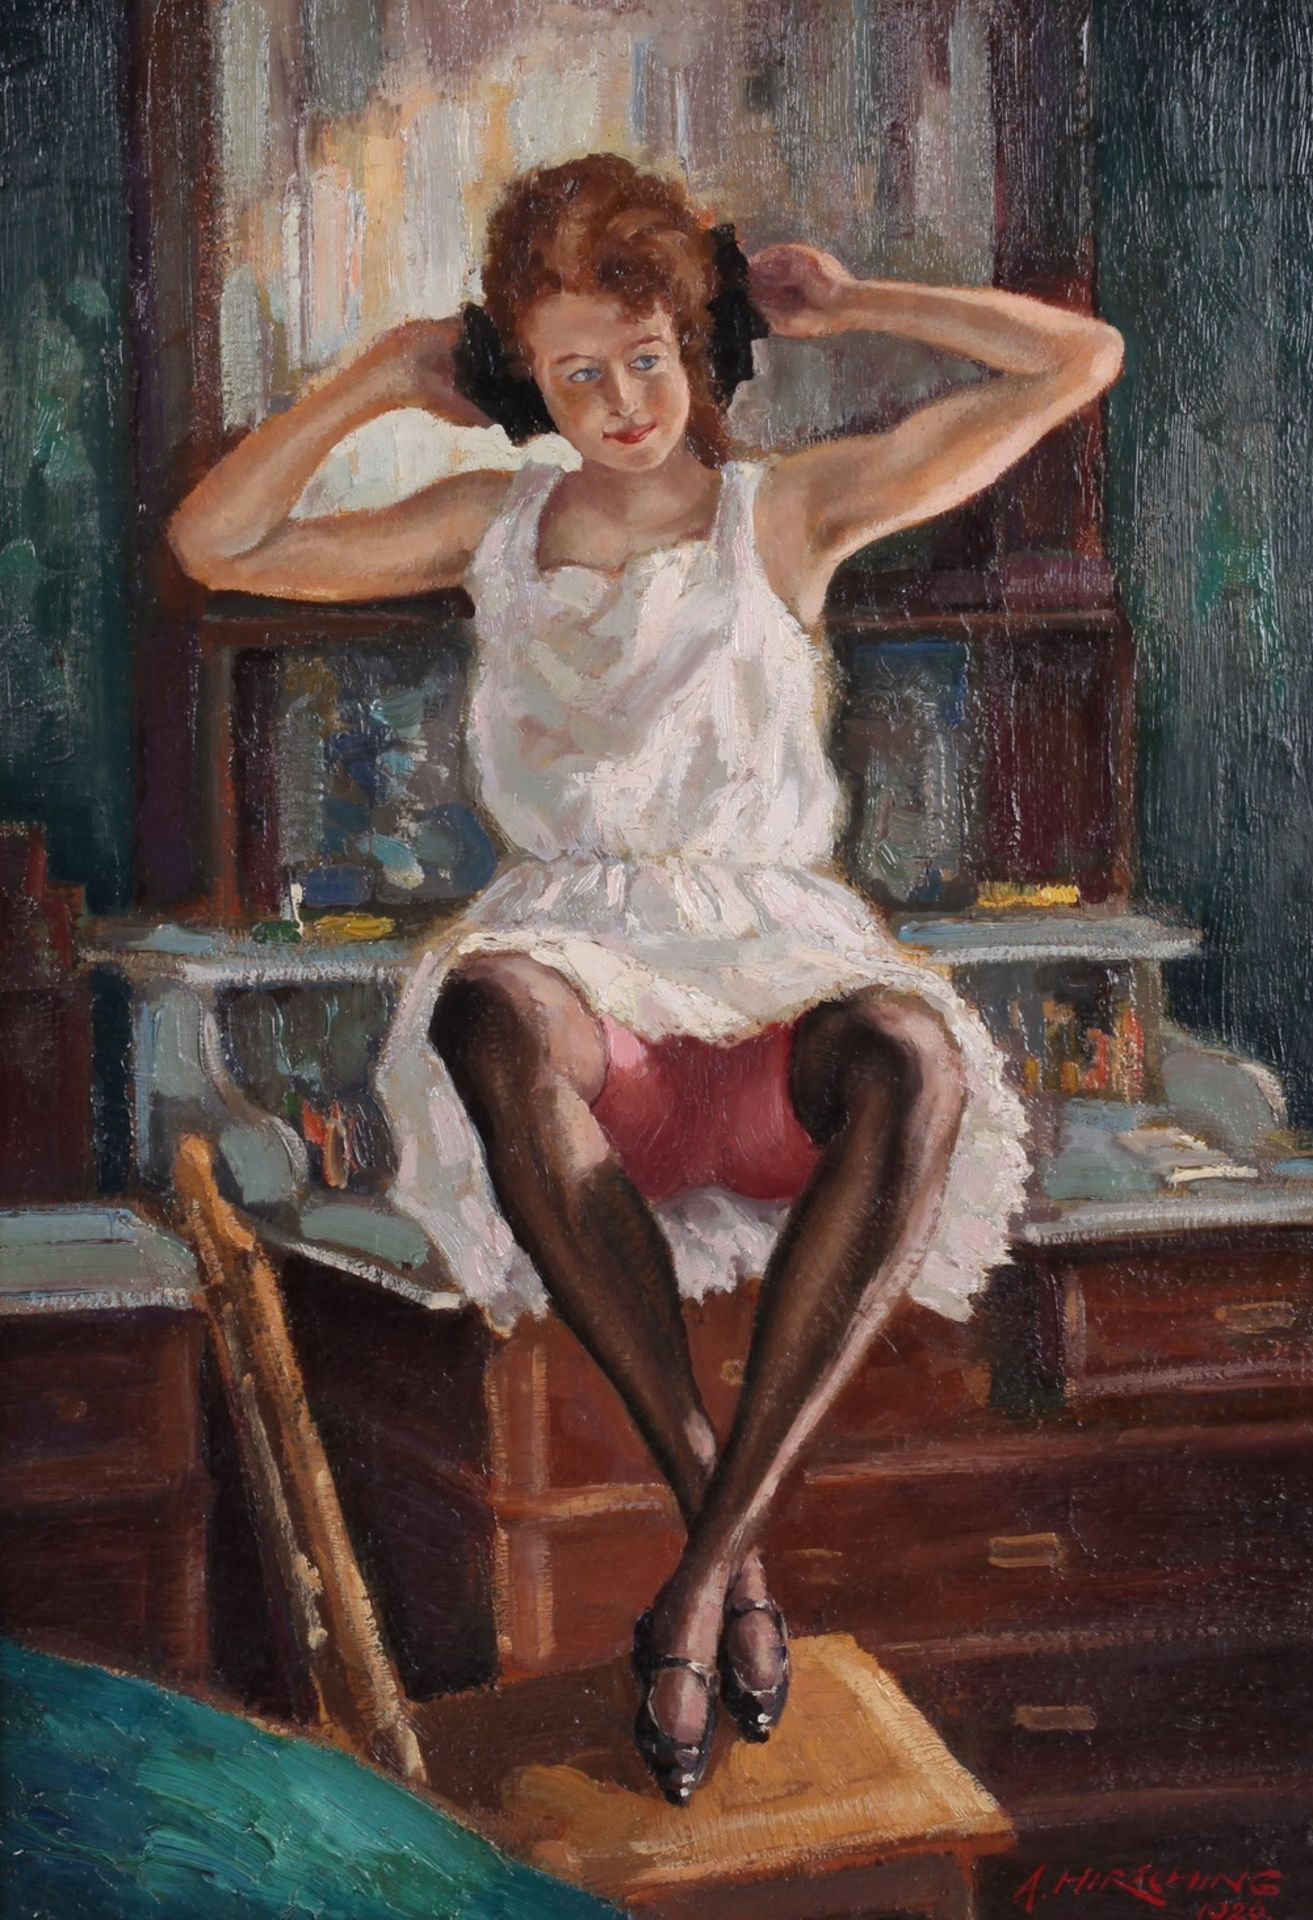 Hirshing, August. Undressing woman in front of the mirror. <br>Signed and framed. 1926. Oil on wood.